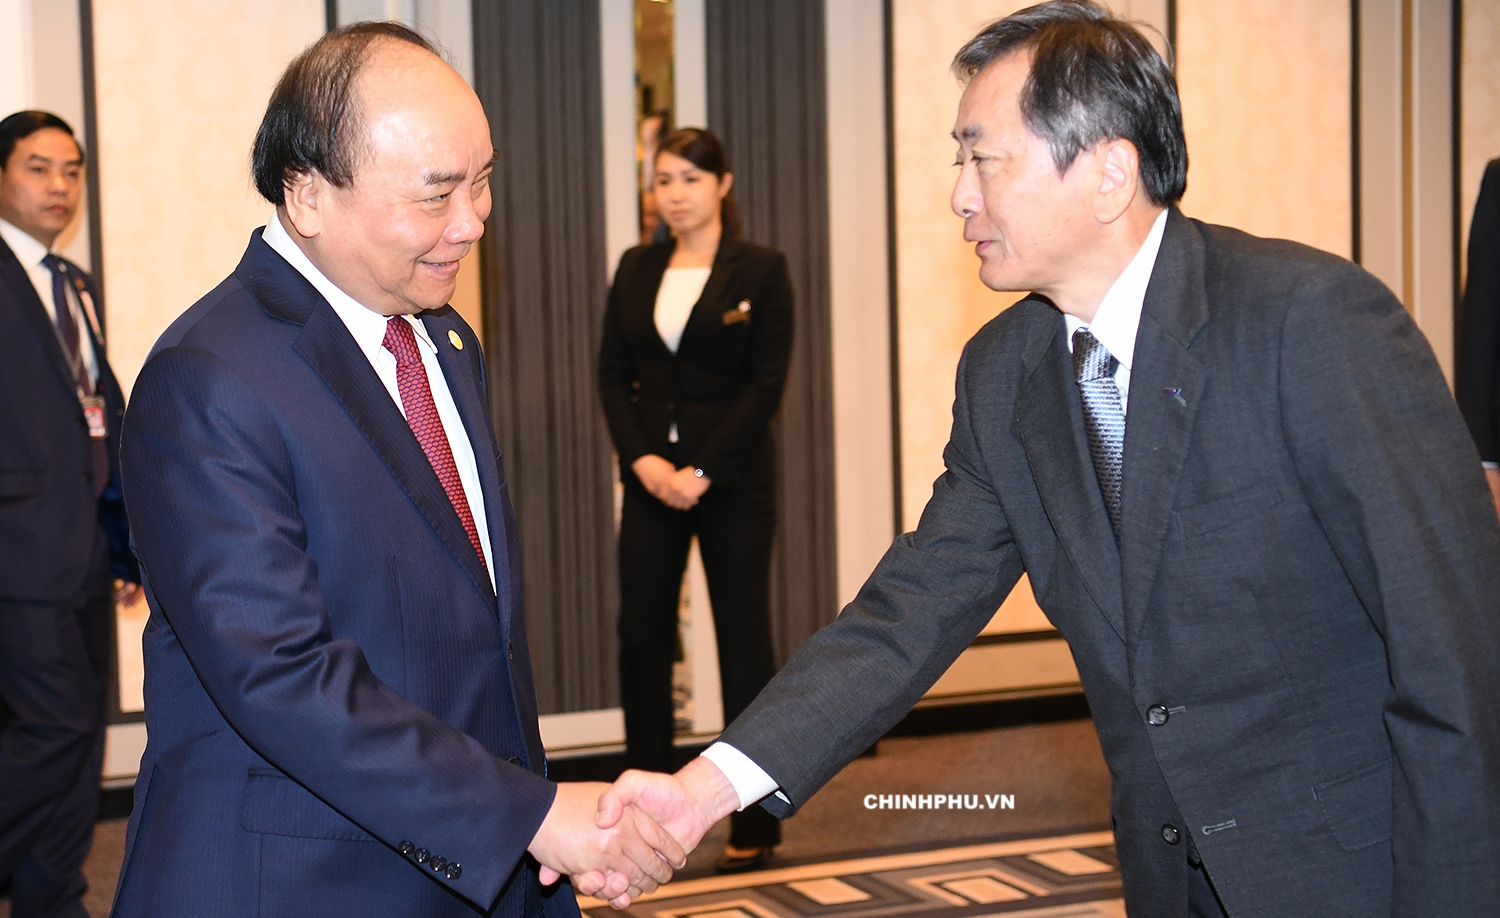 Prime Minister pledges to improve business climate for Japanese investors